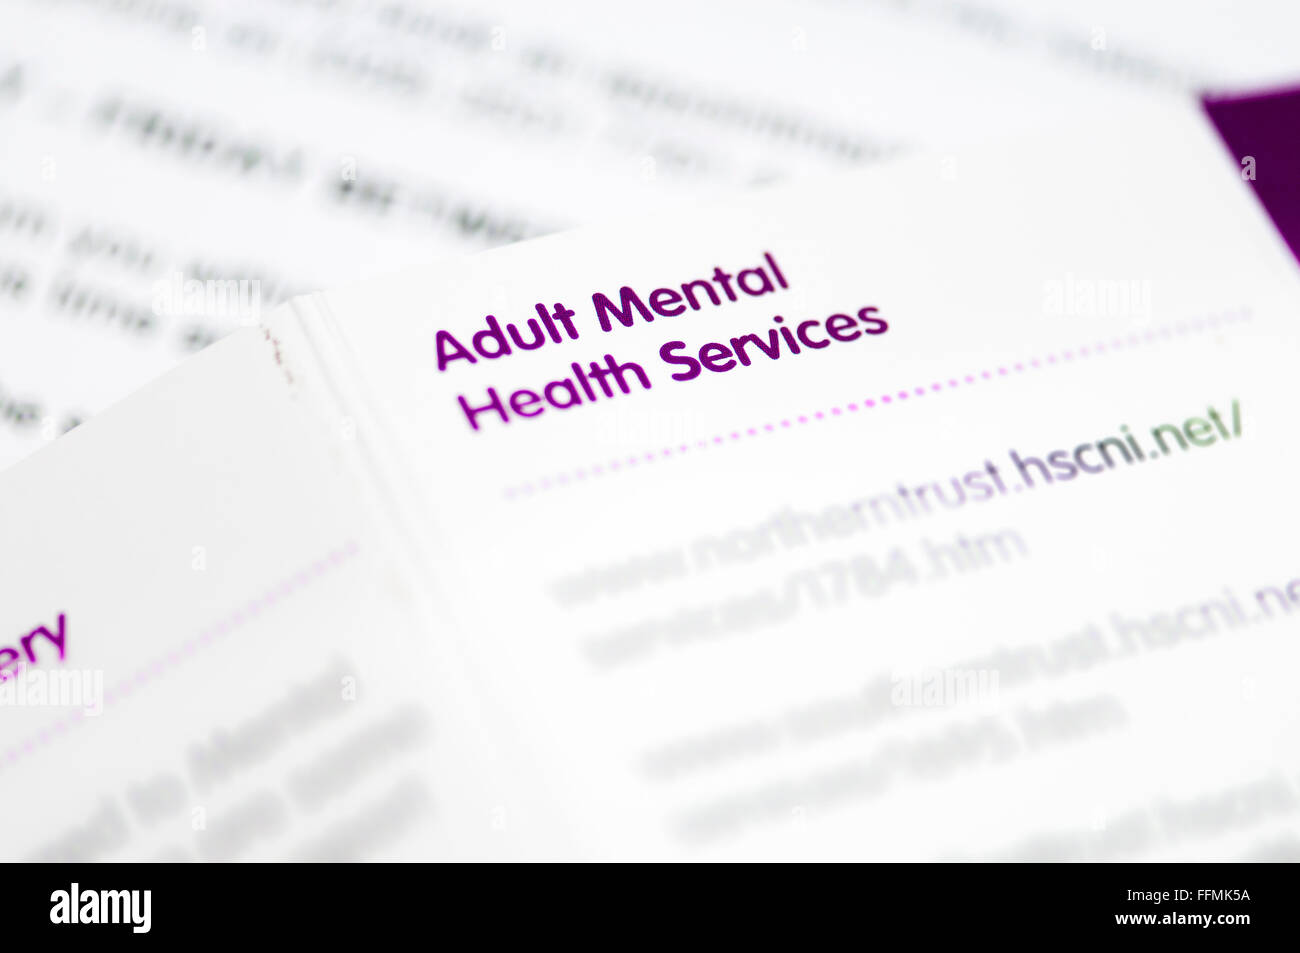 Directory of Adult Mental Health Services for Northern Ireland. - Stock Image